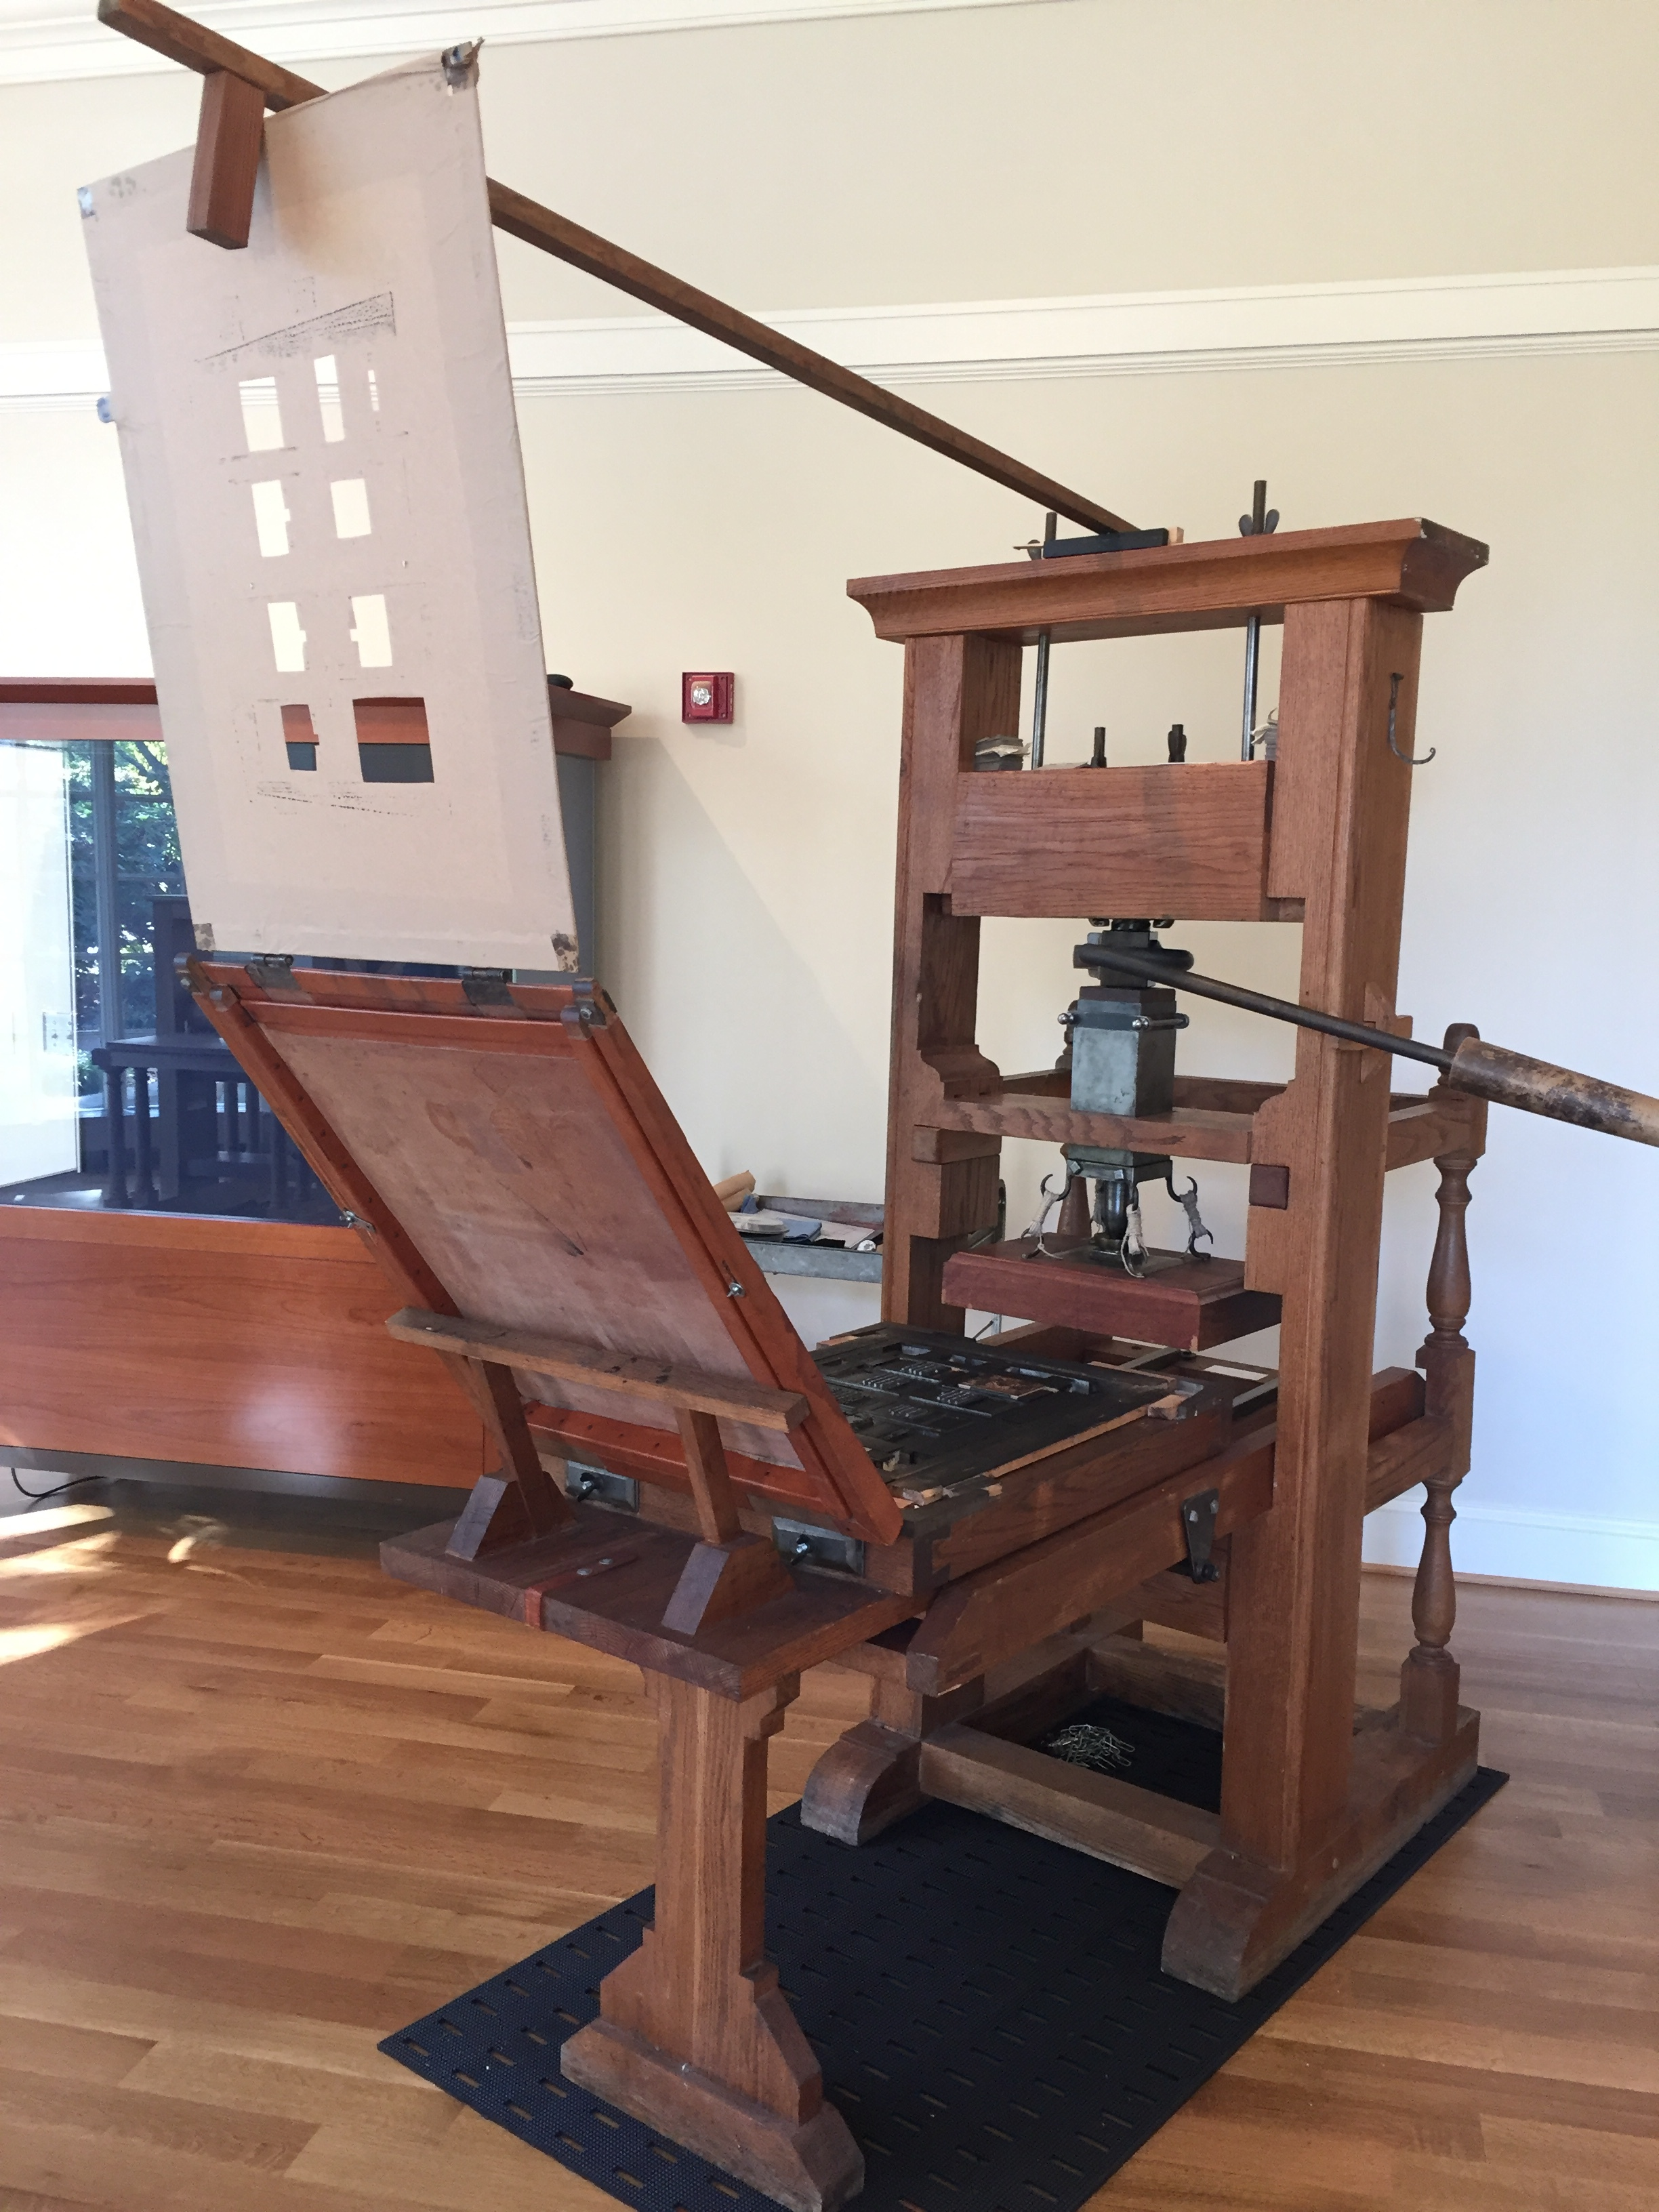 The common press at the University of Virginia.